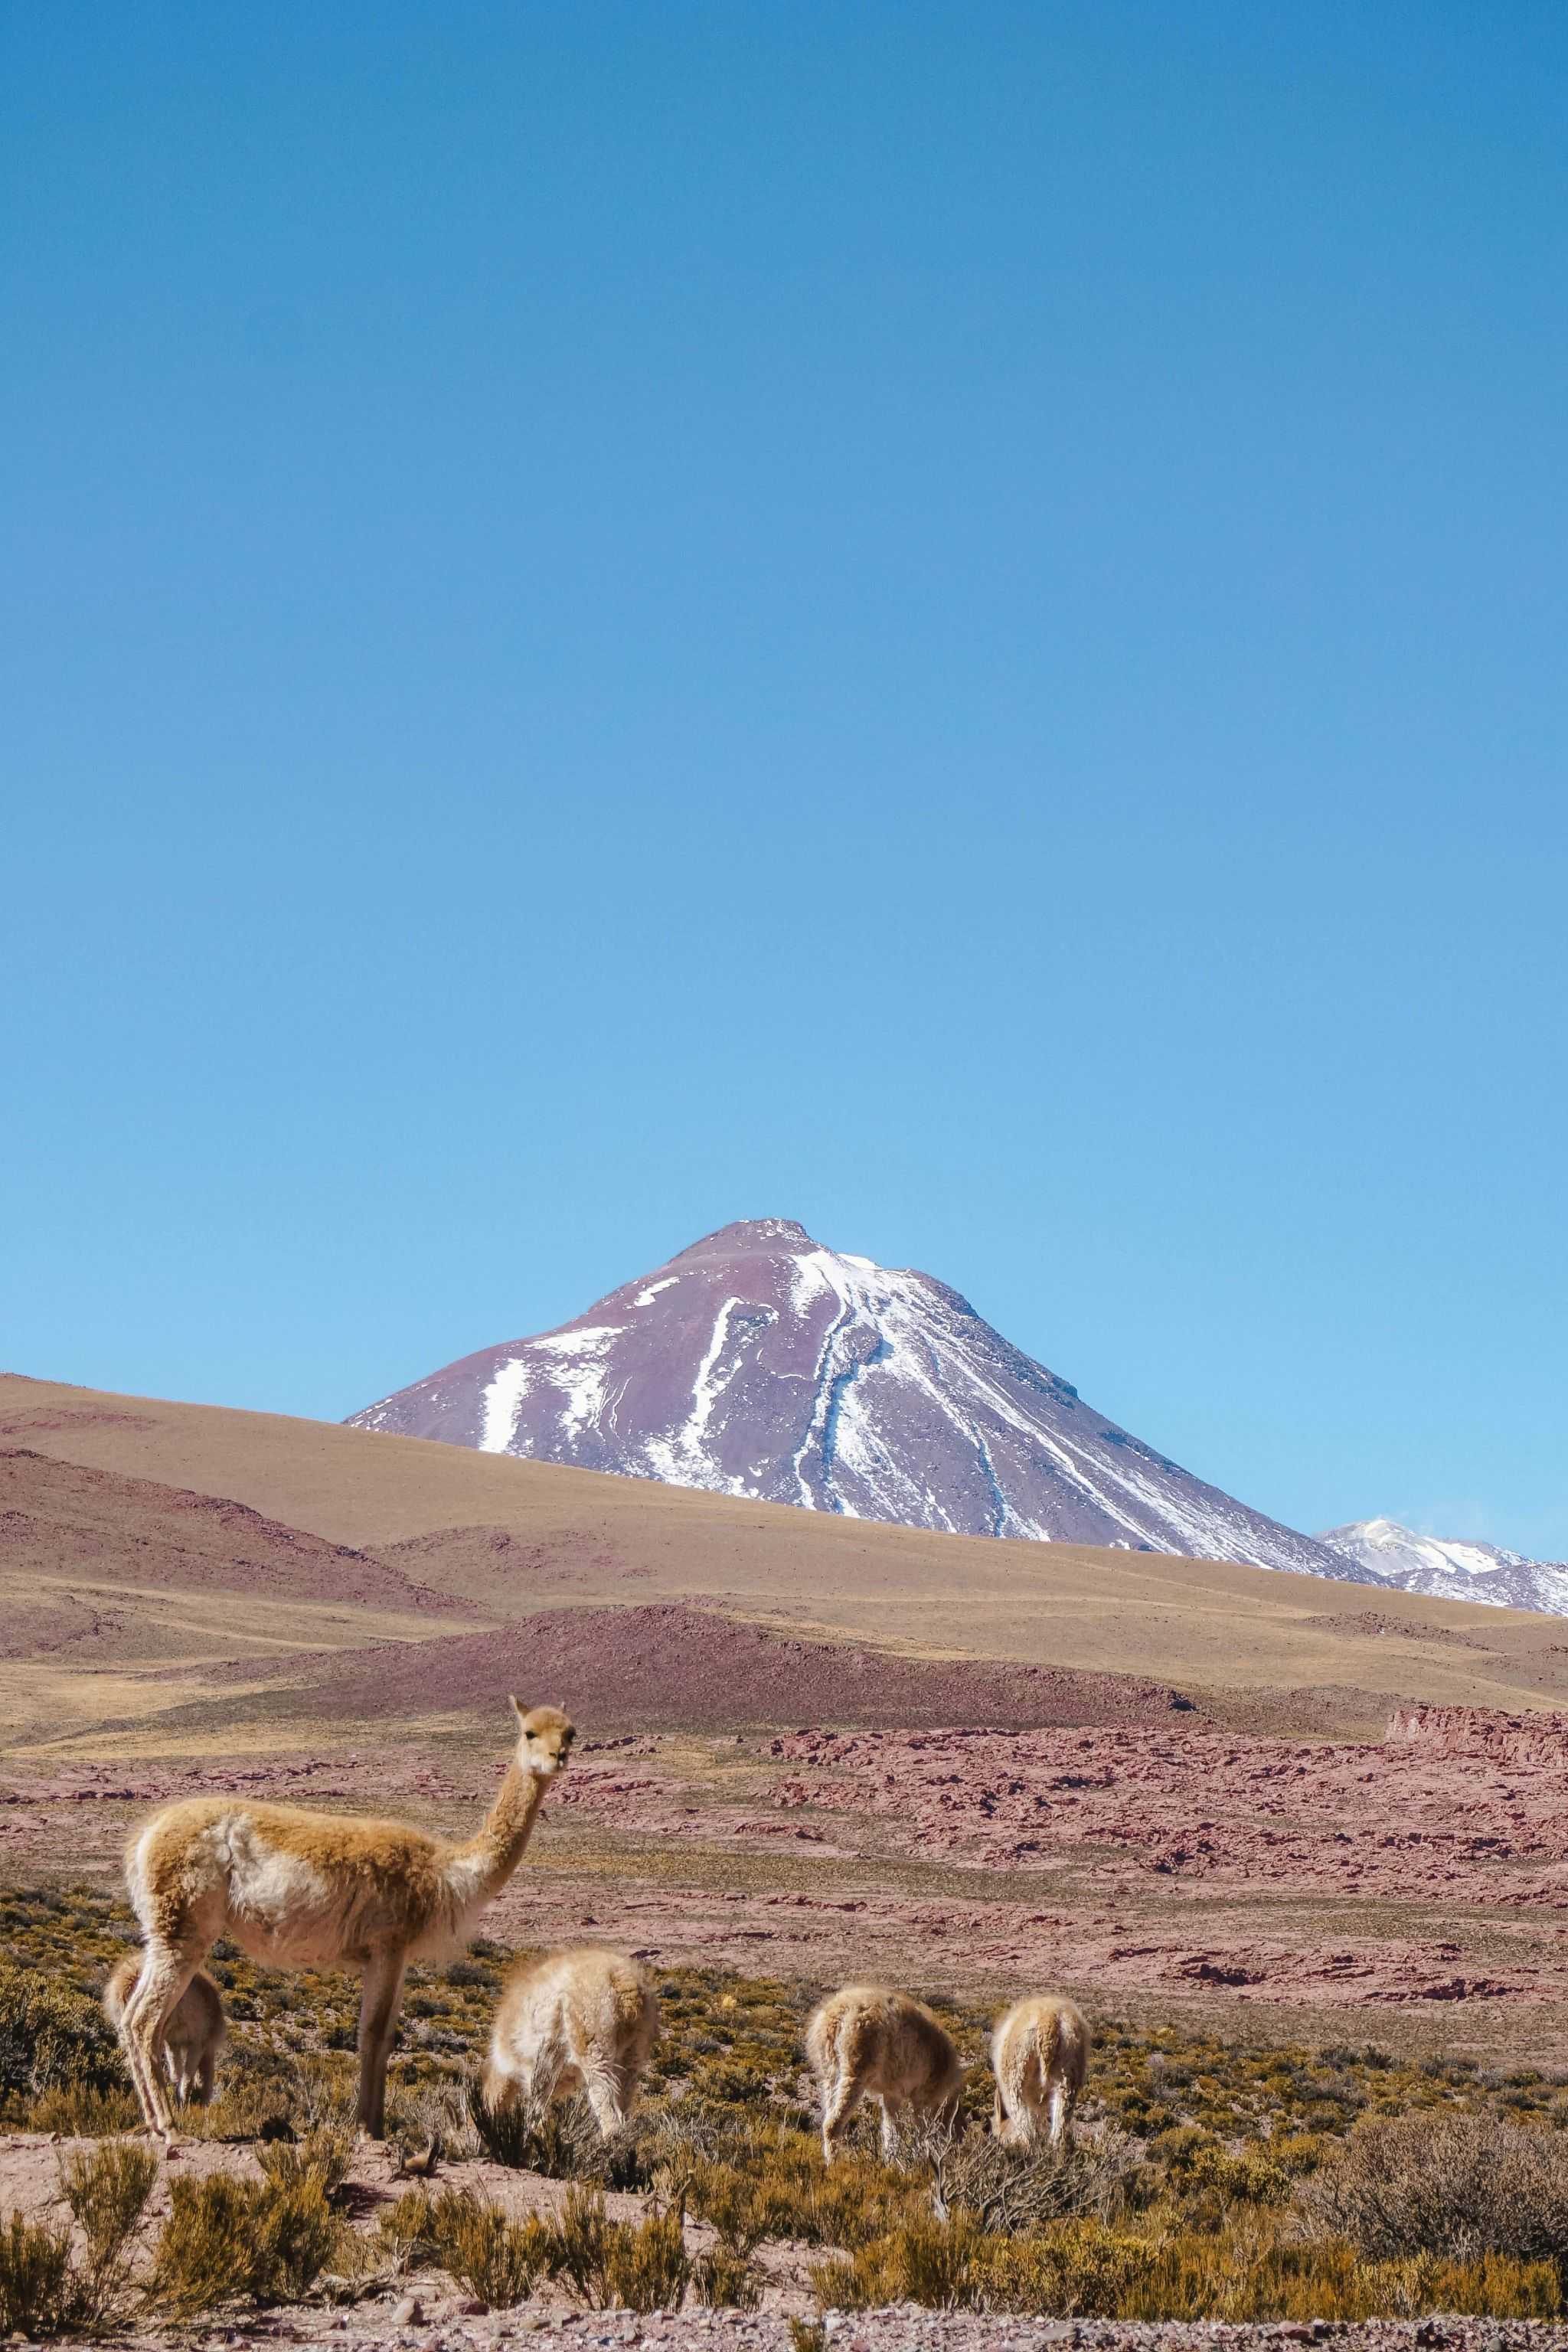 Self-driving guide-to-Atacama-Desert-itinerary-must-see-spots-35